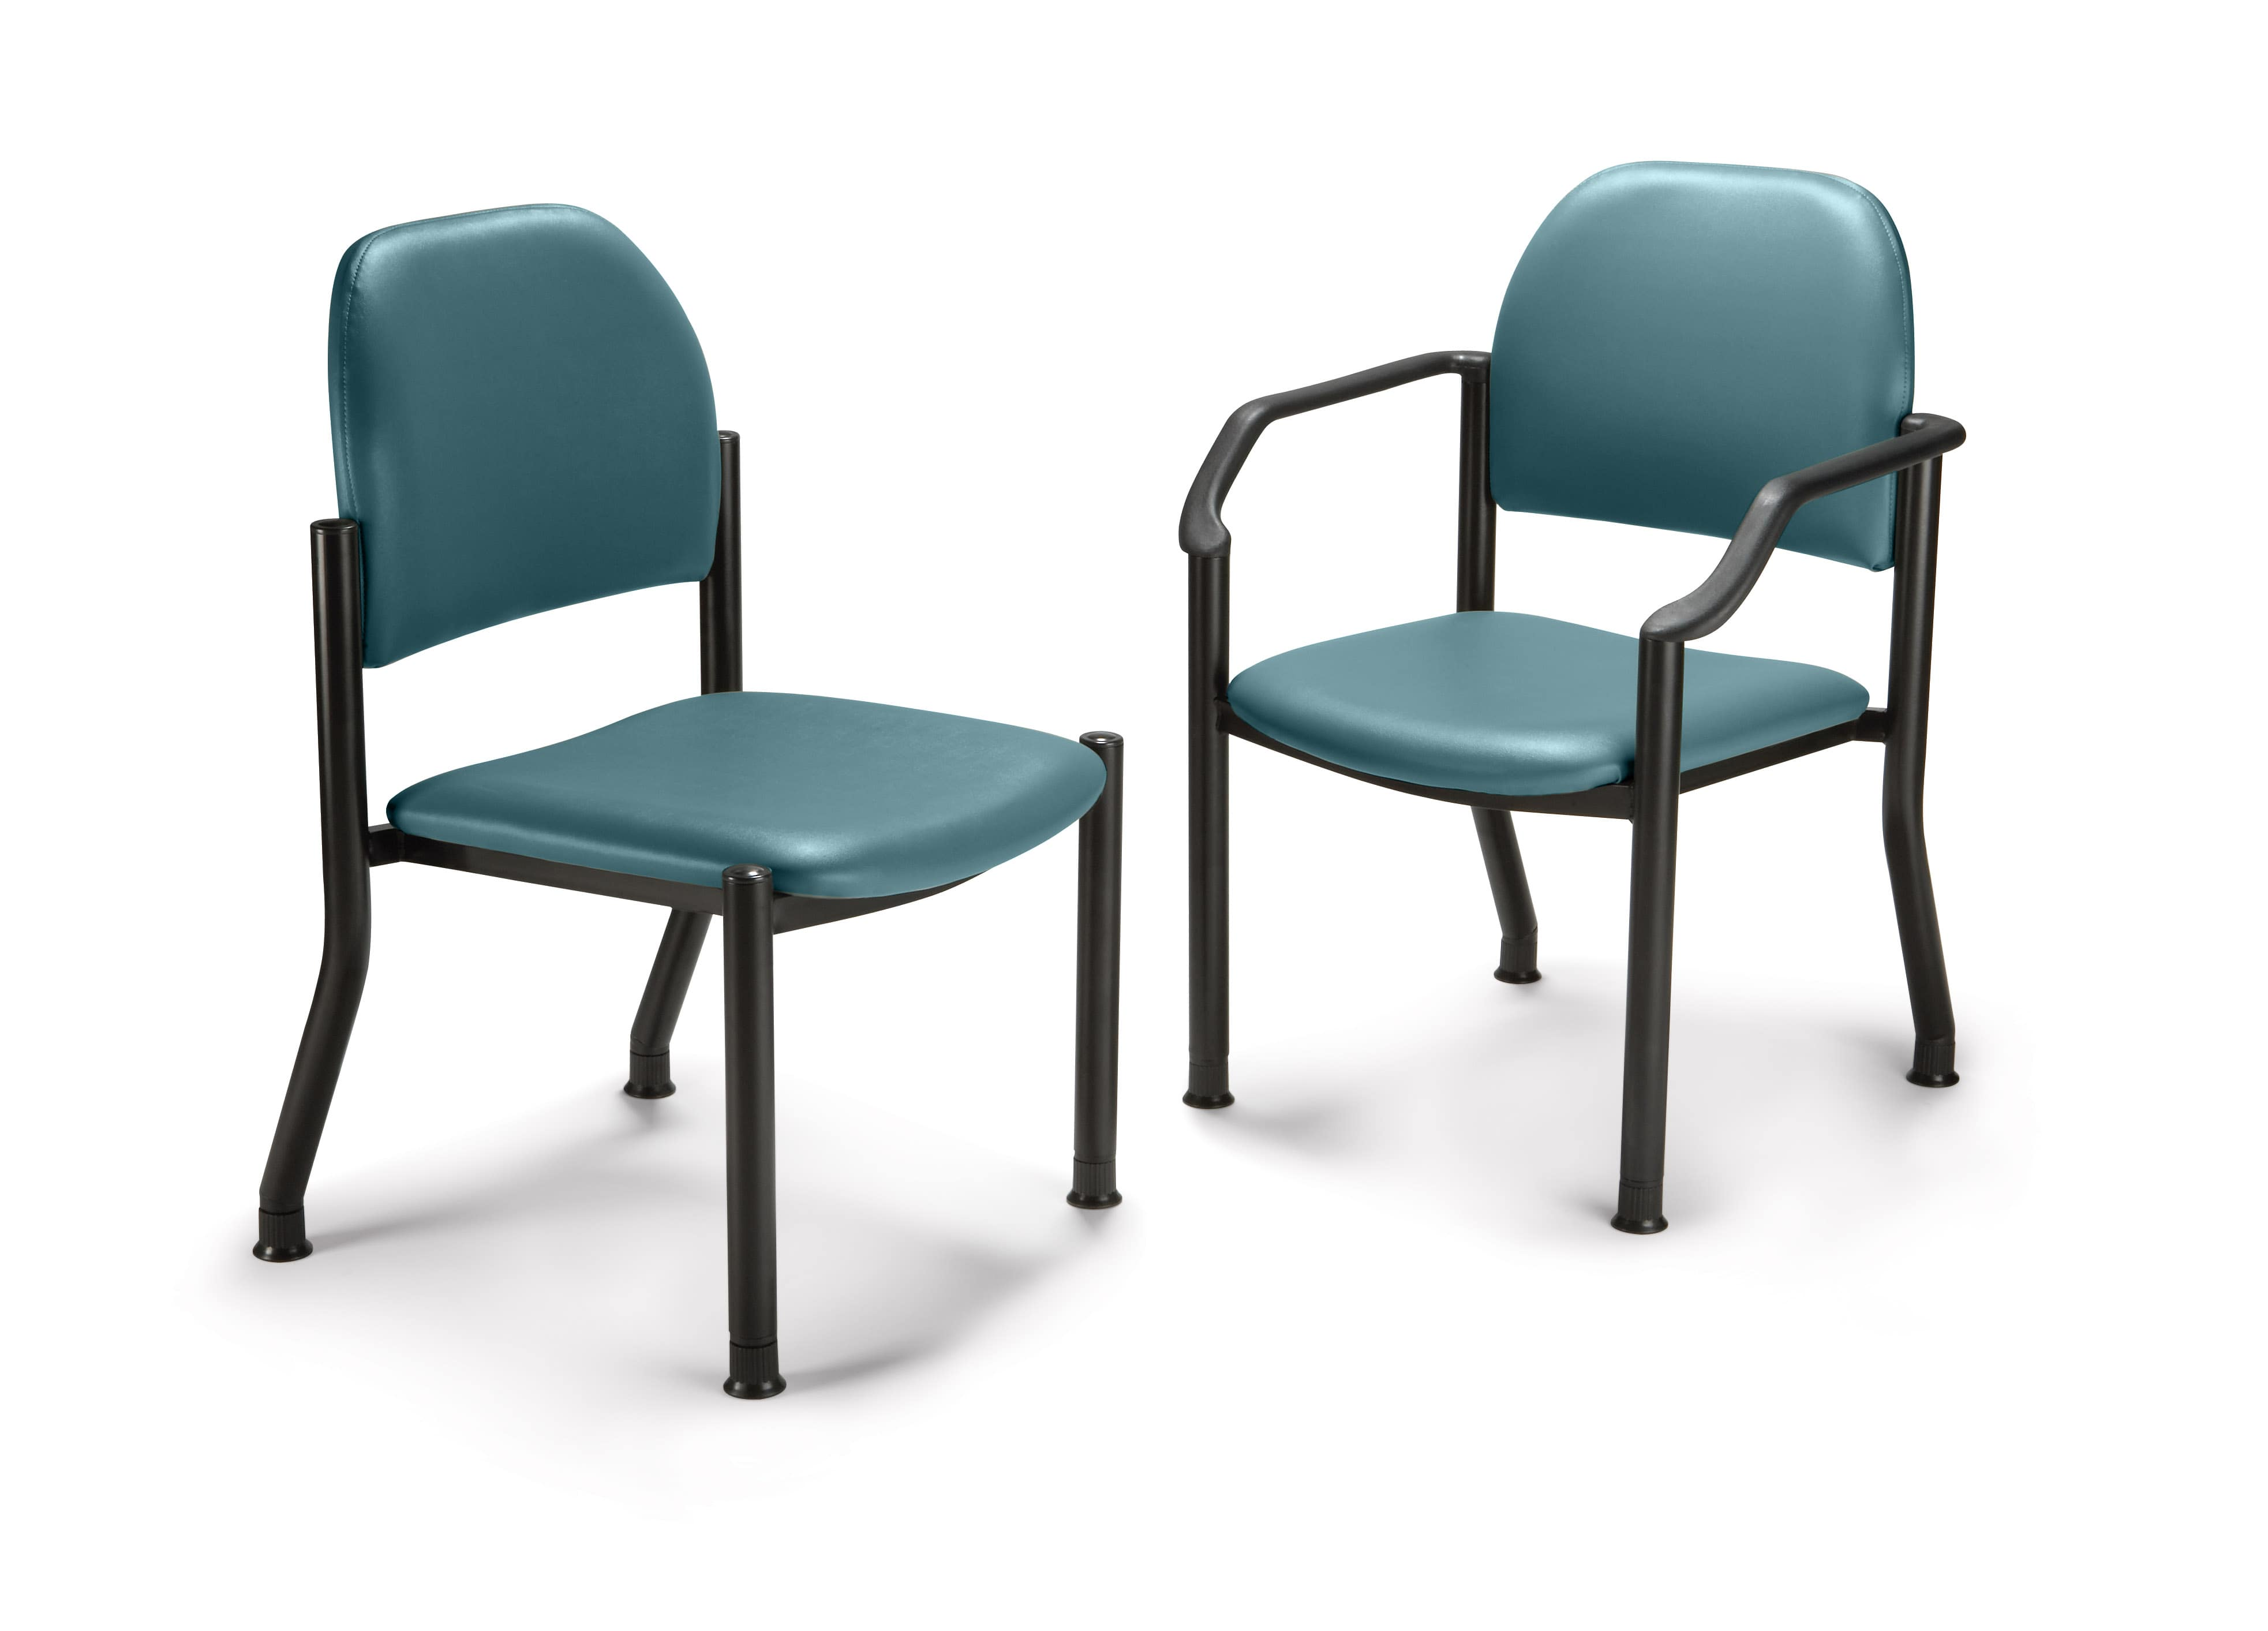 680_mid_side_chairs